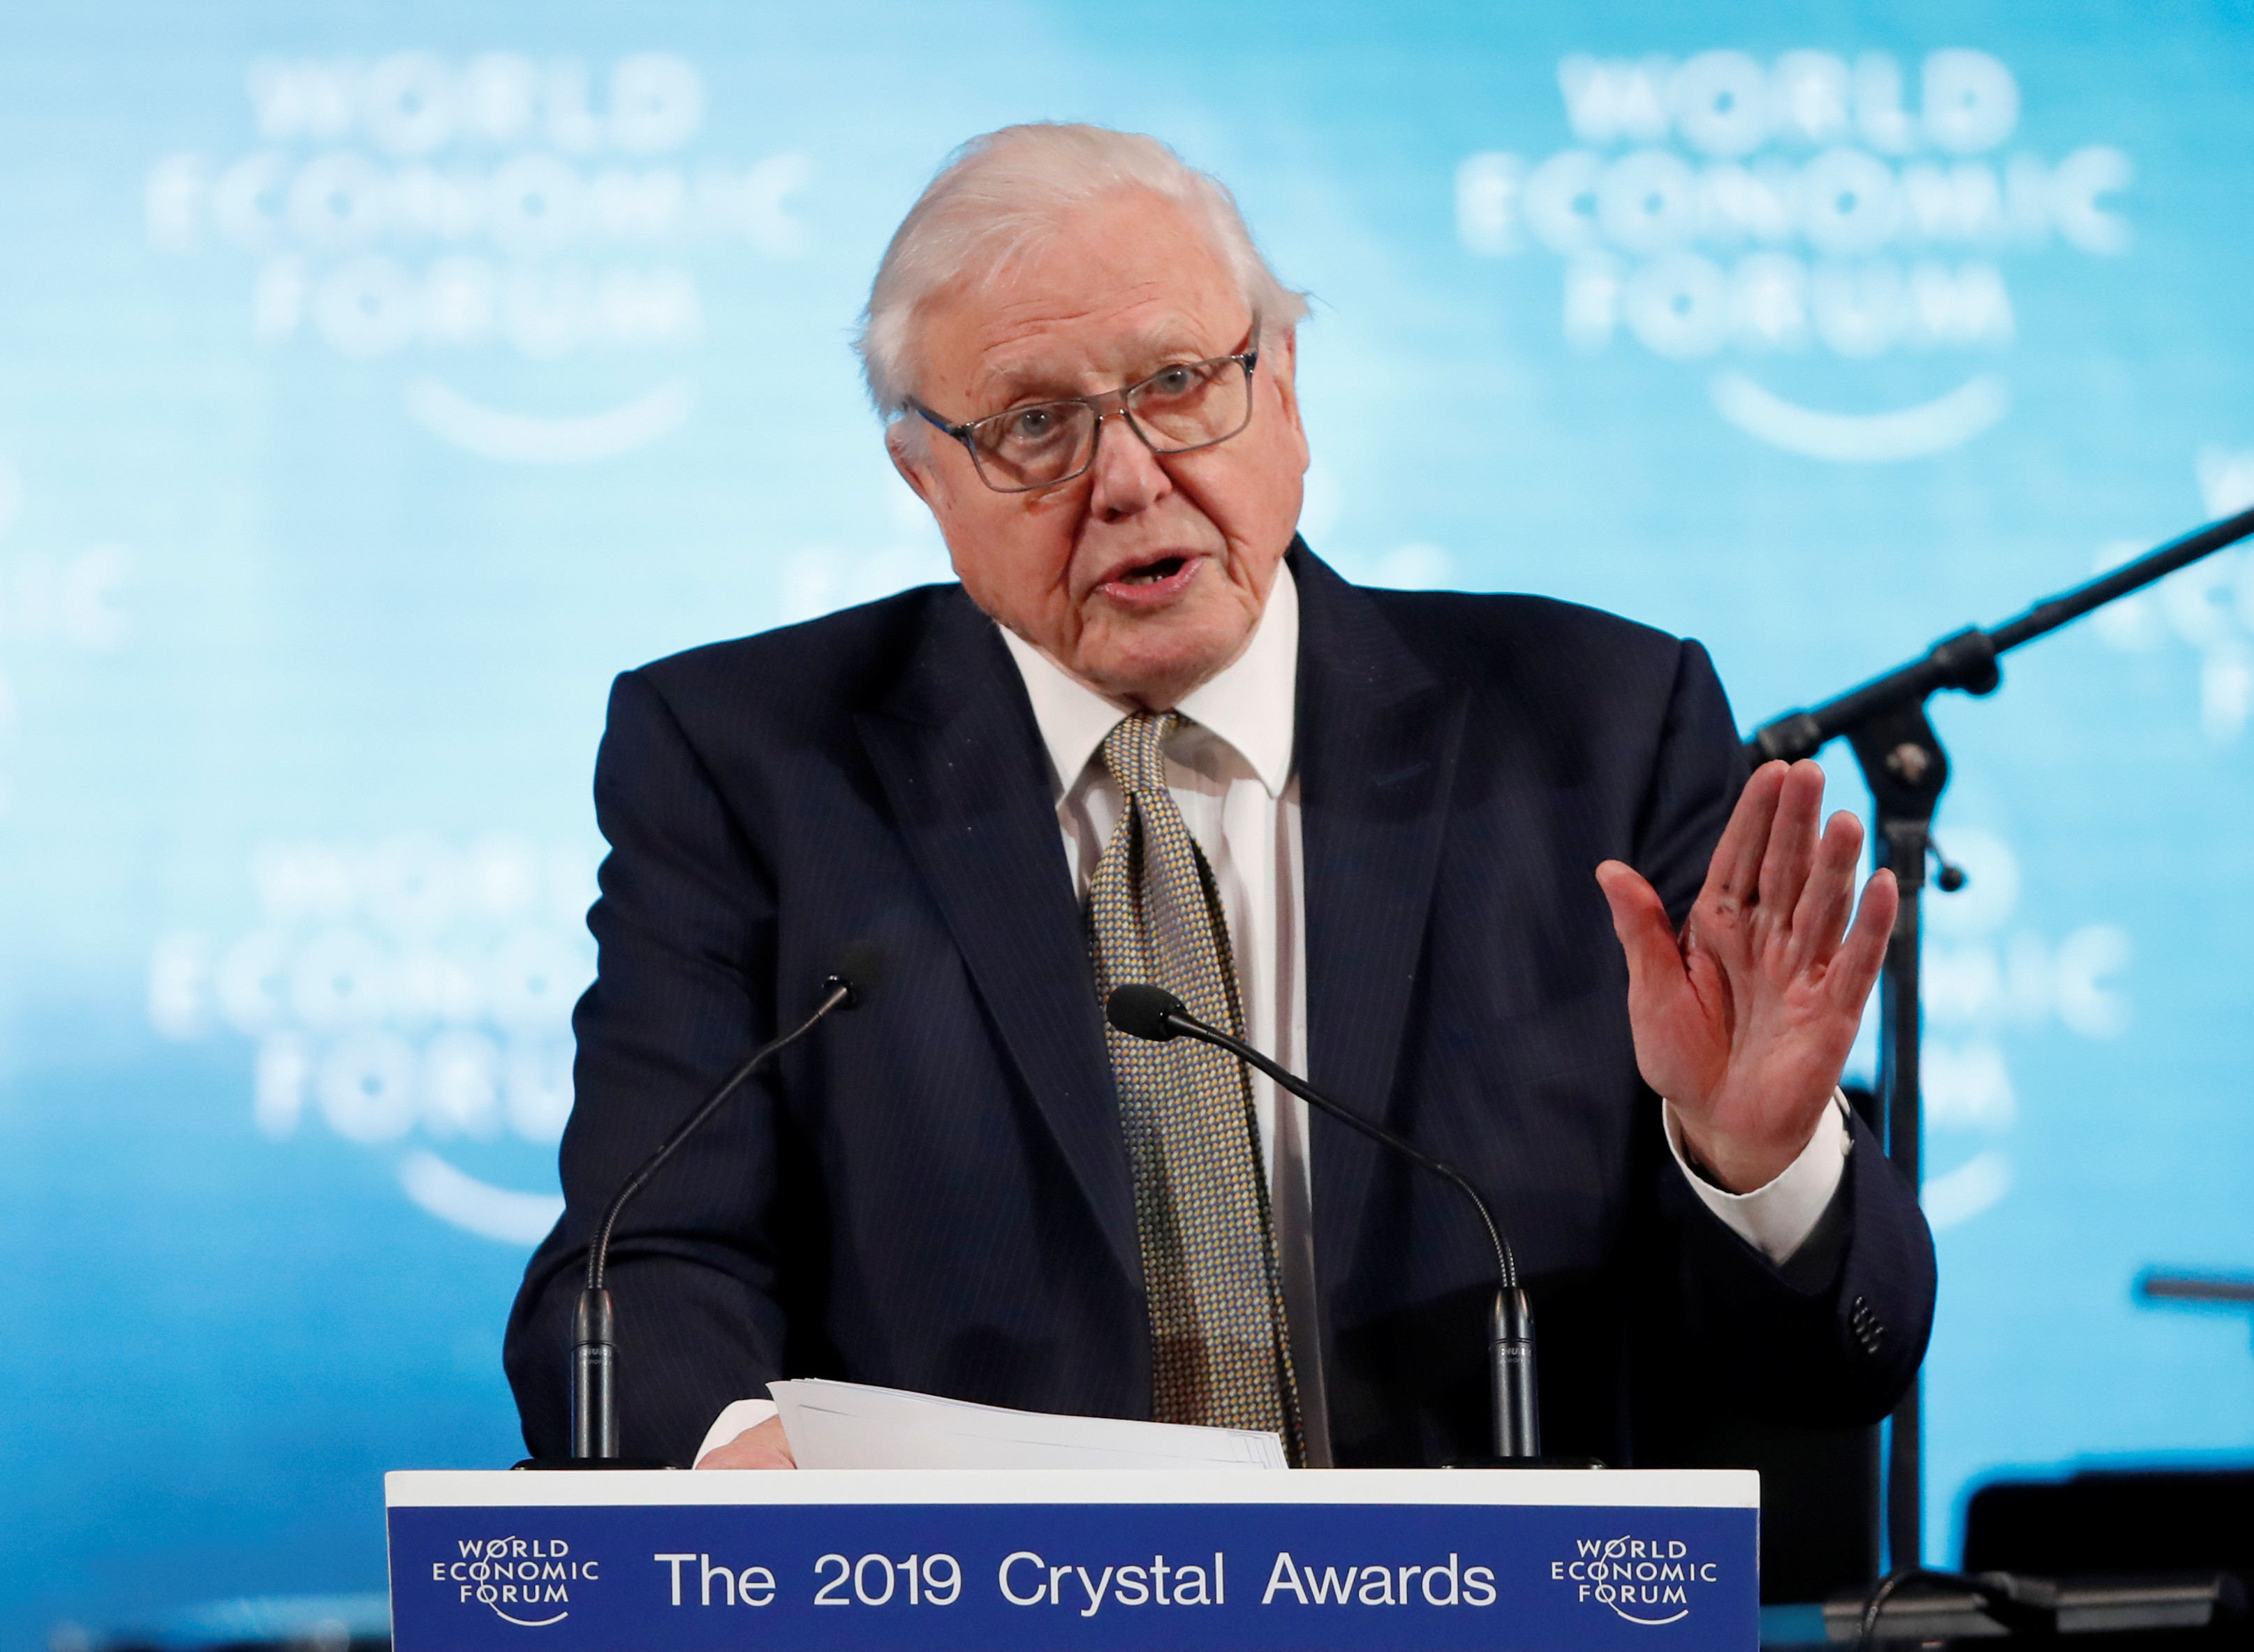 Naturalist Sir David Attenborough delivers a speech as he receives a Crystal Award, during an opening ceremony of the World Economic Forum (WEF) in Davos, Switzerland, January 21, 2019. REUTERS/Arnd Wiegmann